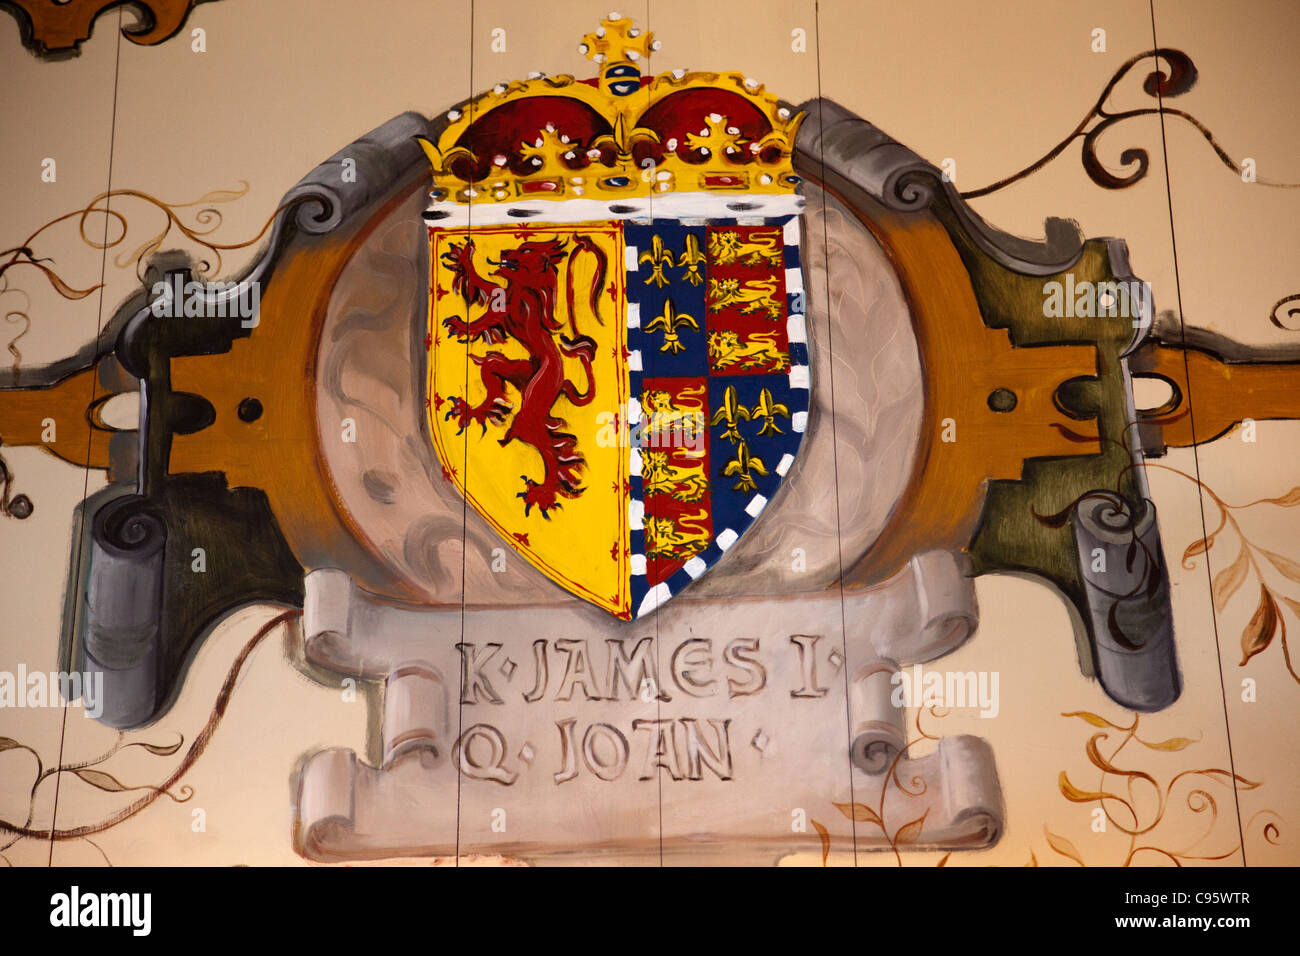 scotland, edinburgh, edinburgh castle, royal palace decoration in